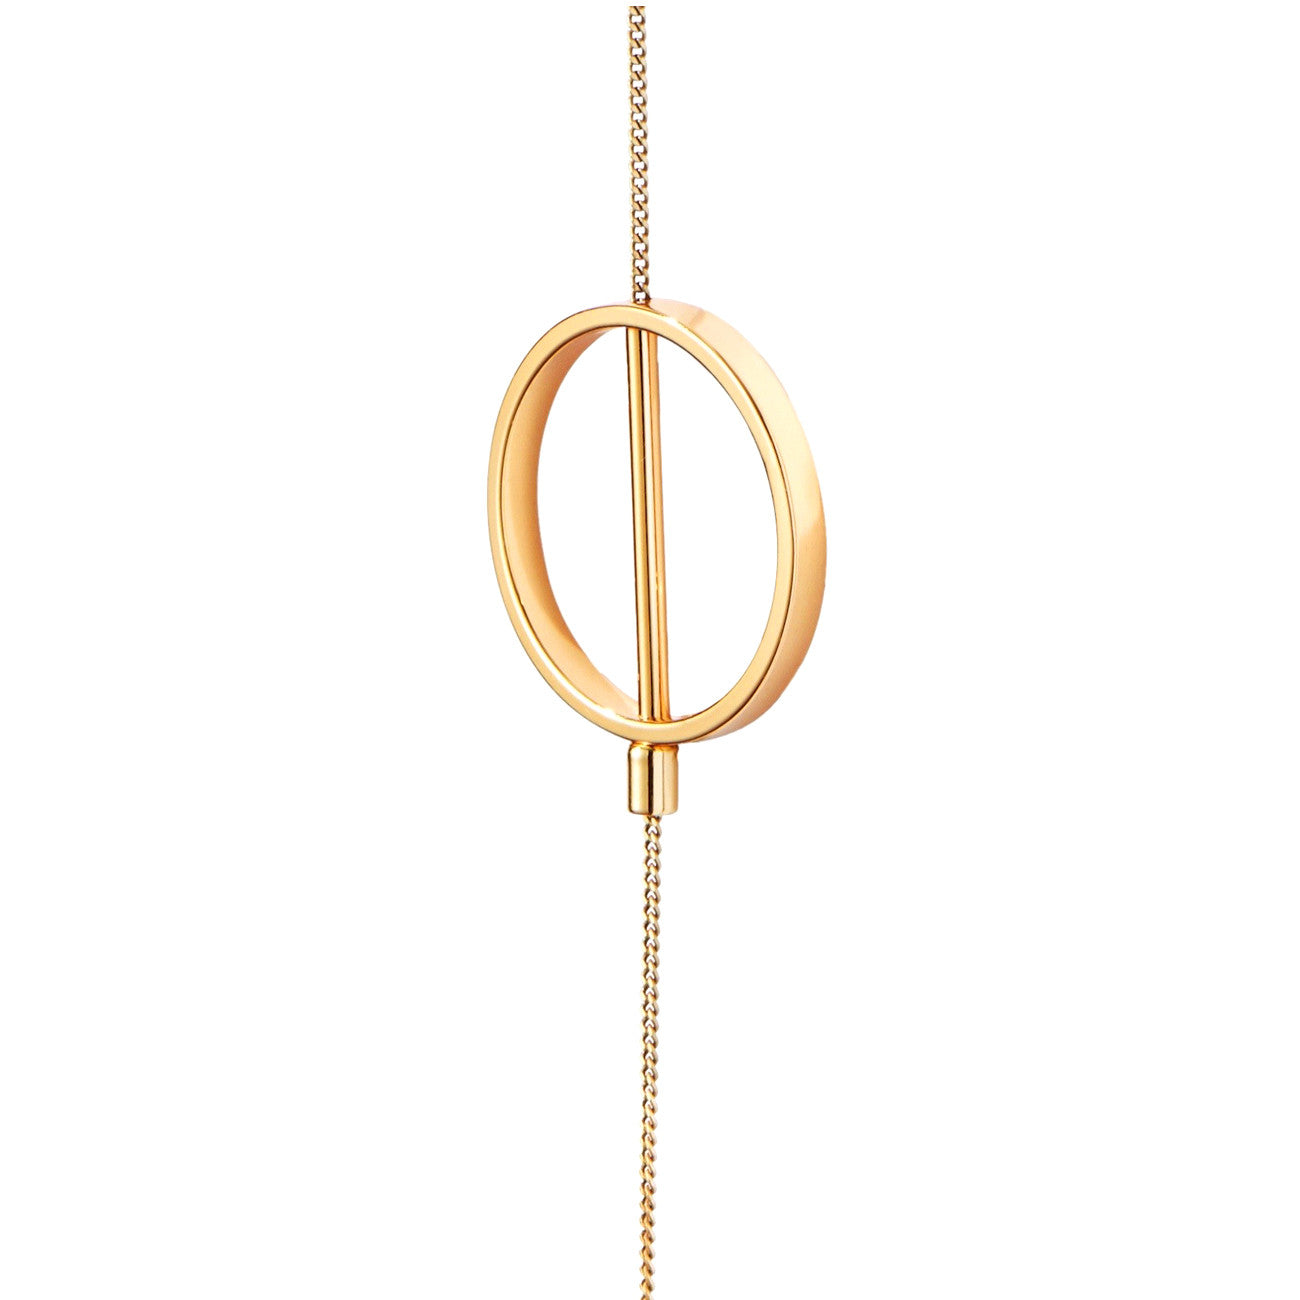 Jenny Bird Rhine Lariat Necklace in Gold